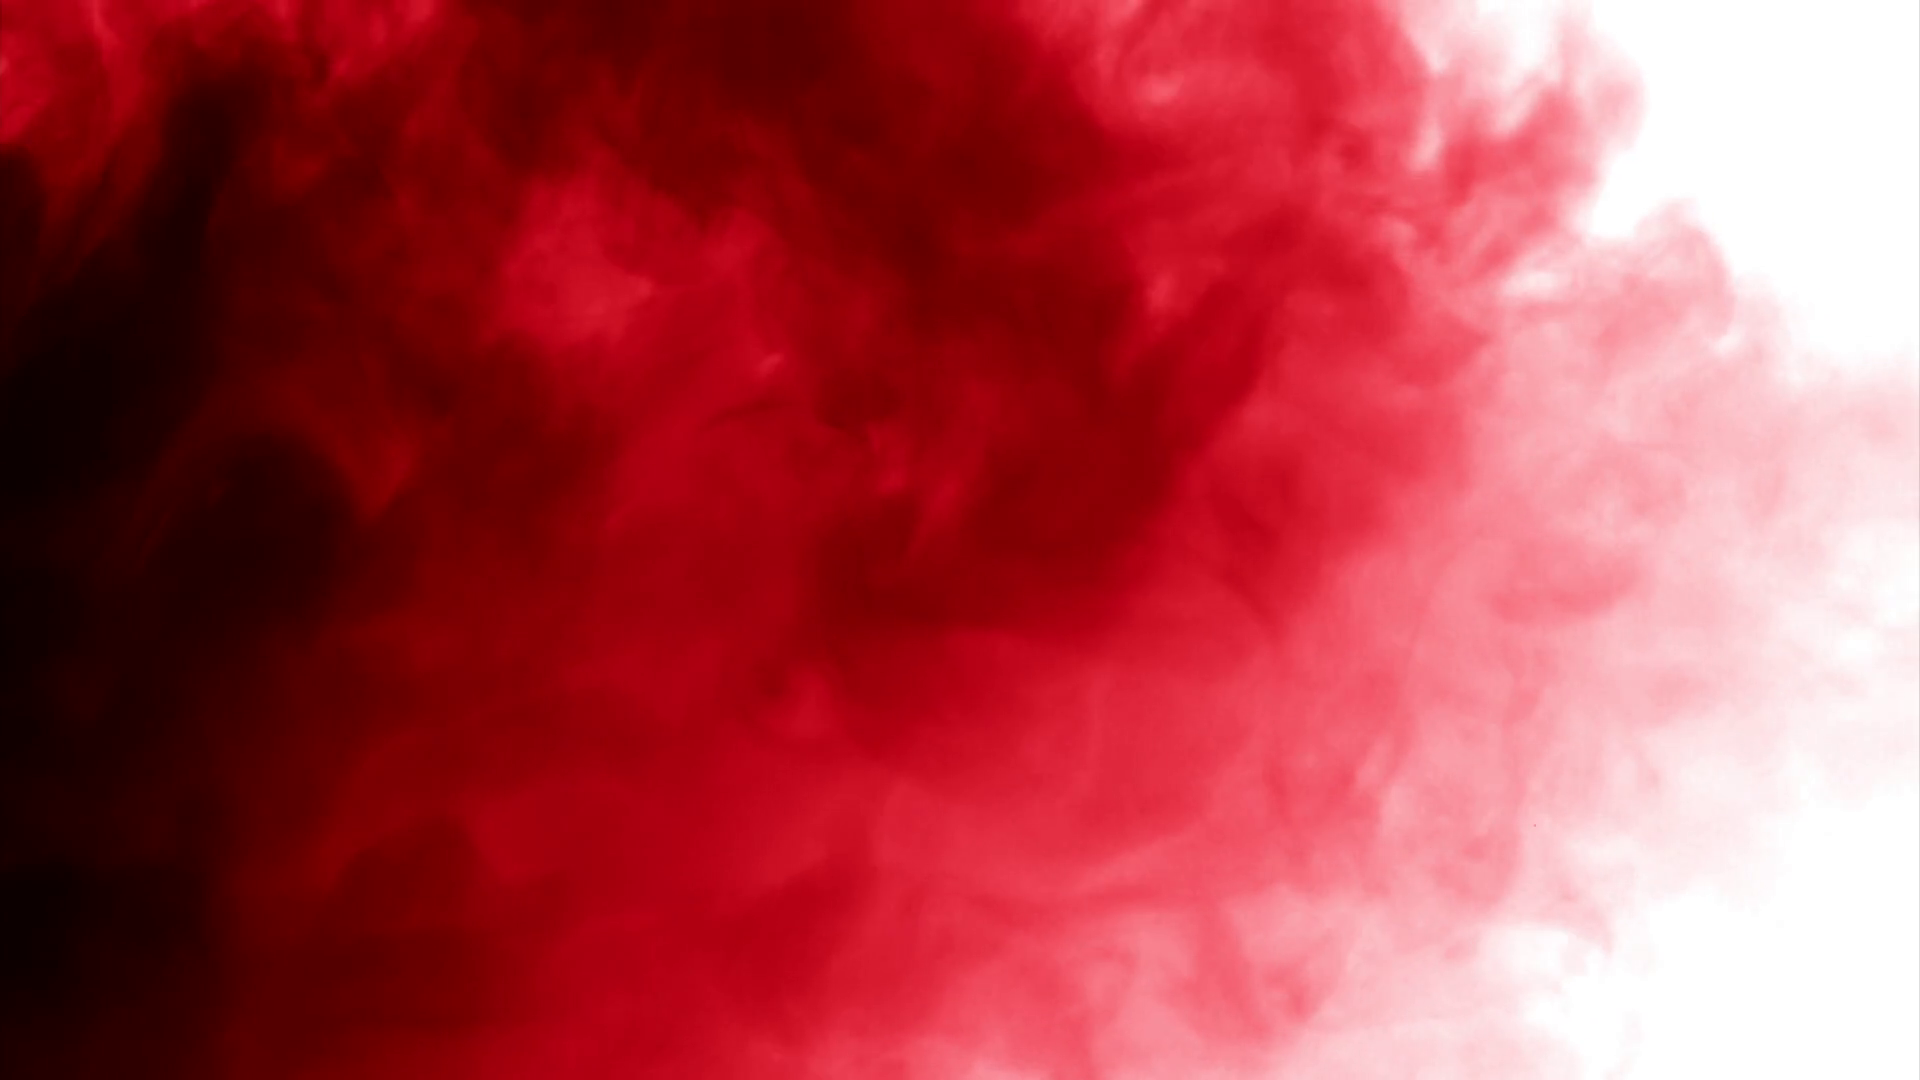 Red And White Backgrounds Posted By Ryan Anderson